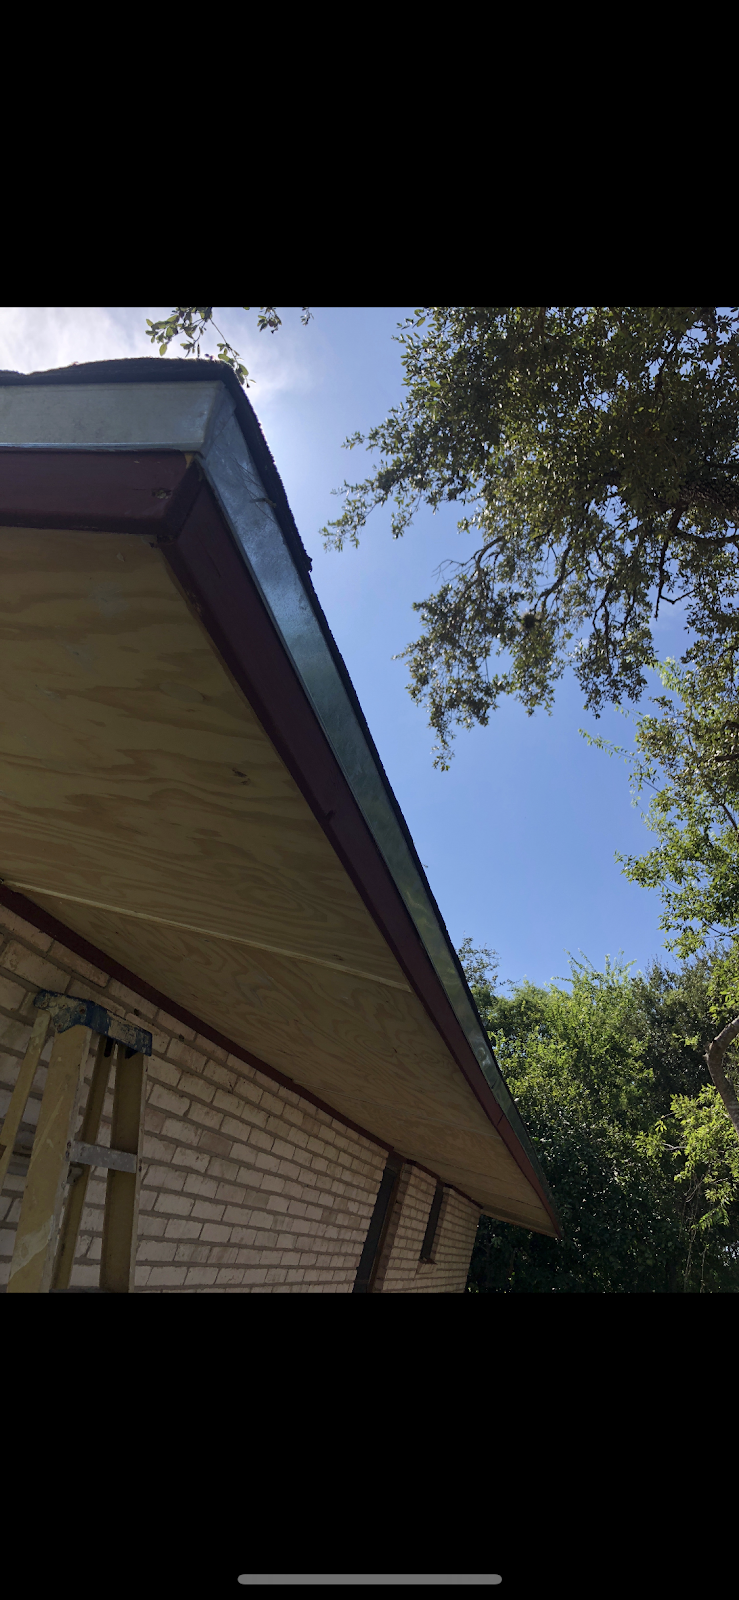 Connelly Foundation, Roofing & Construction - roofing contractor  | Photo 8 of 10 | Address: 1959 Saratoga Blvd suite 3104, Corpus Christi, TX 78417, USA | Phone: (361) 549-2857